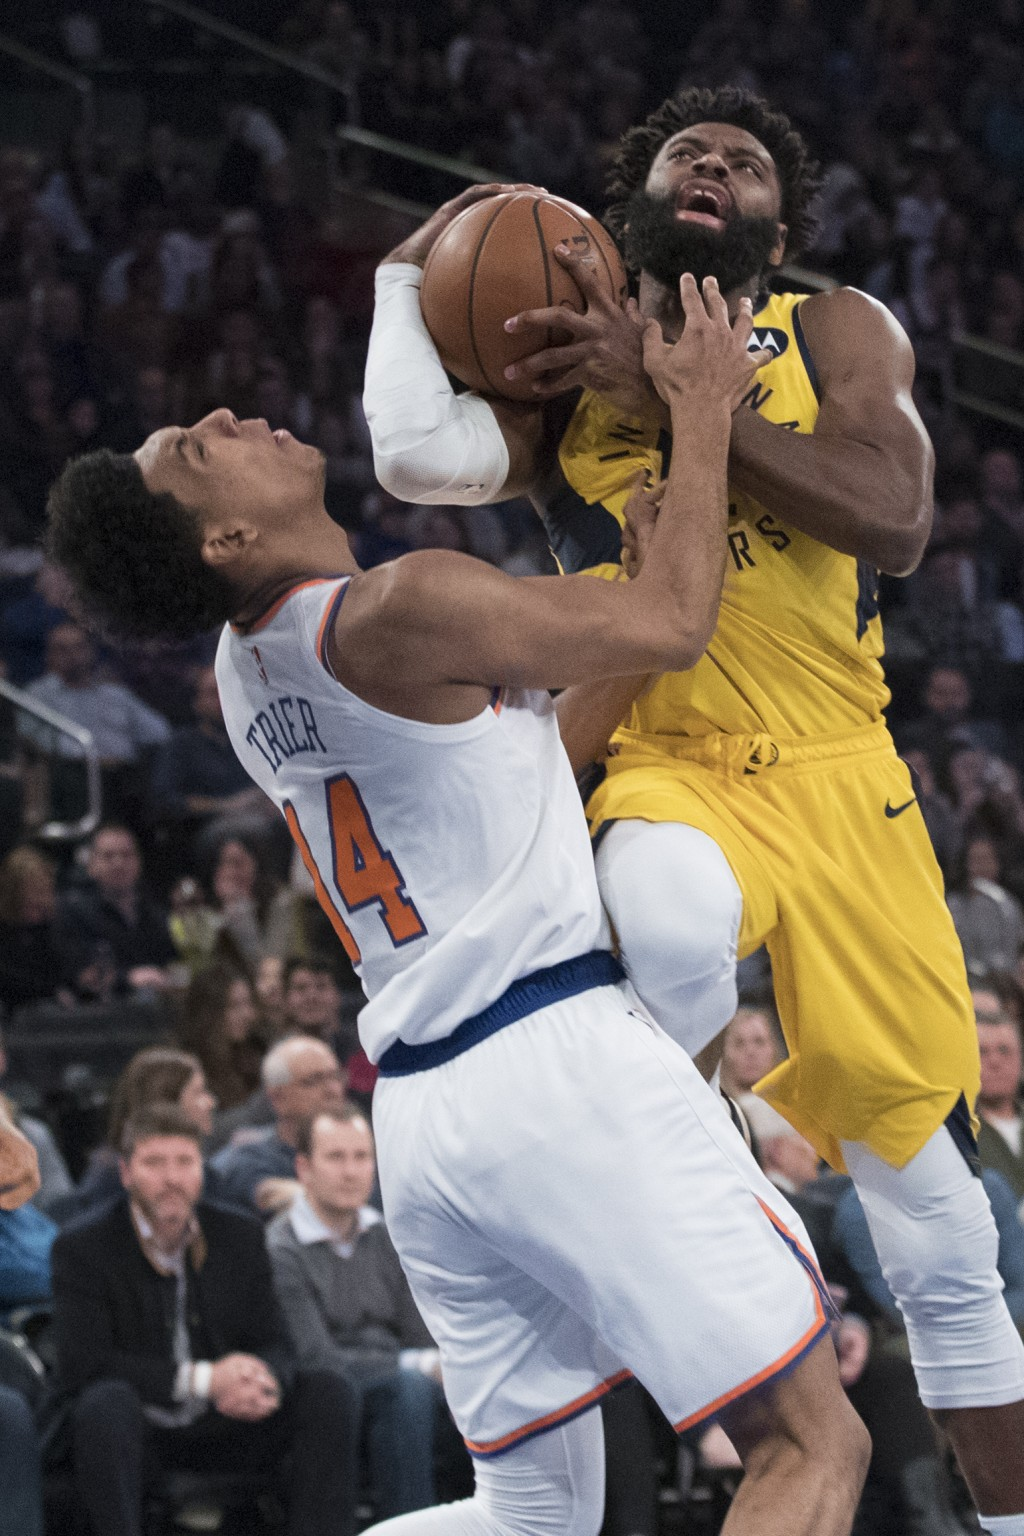 New York Knicks guard Allonzo Trier (14) fouls Indiana Pacers guard Tyreke Evans during the first half of an NBA basketball game Friday, Jan. 11, 2019